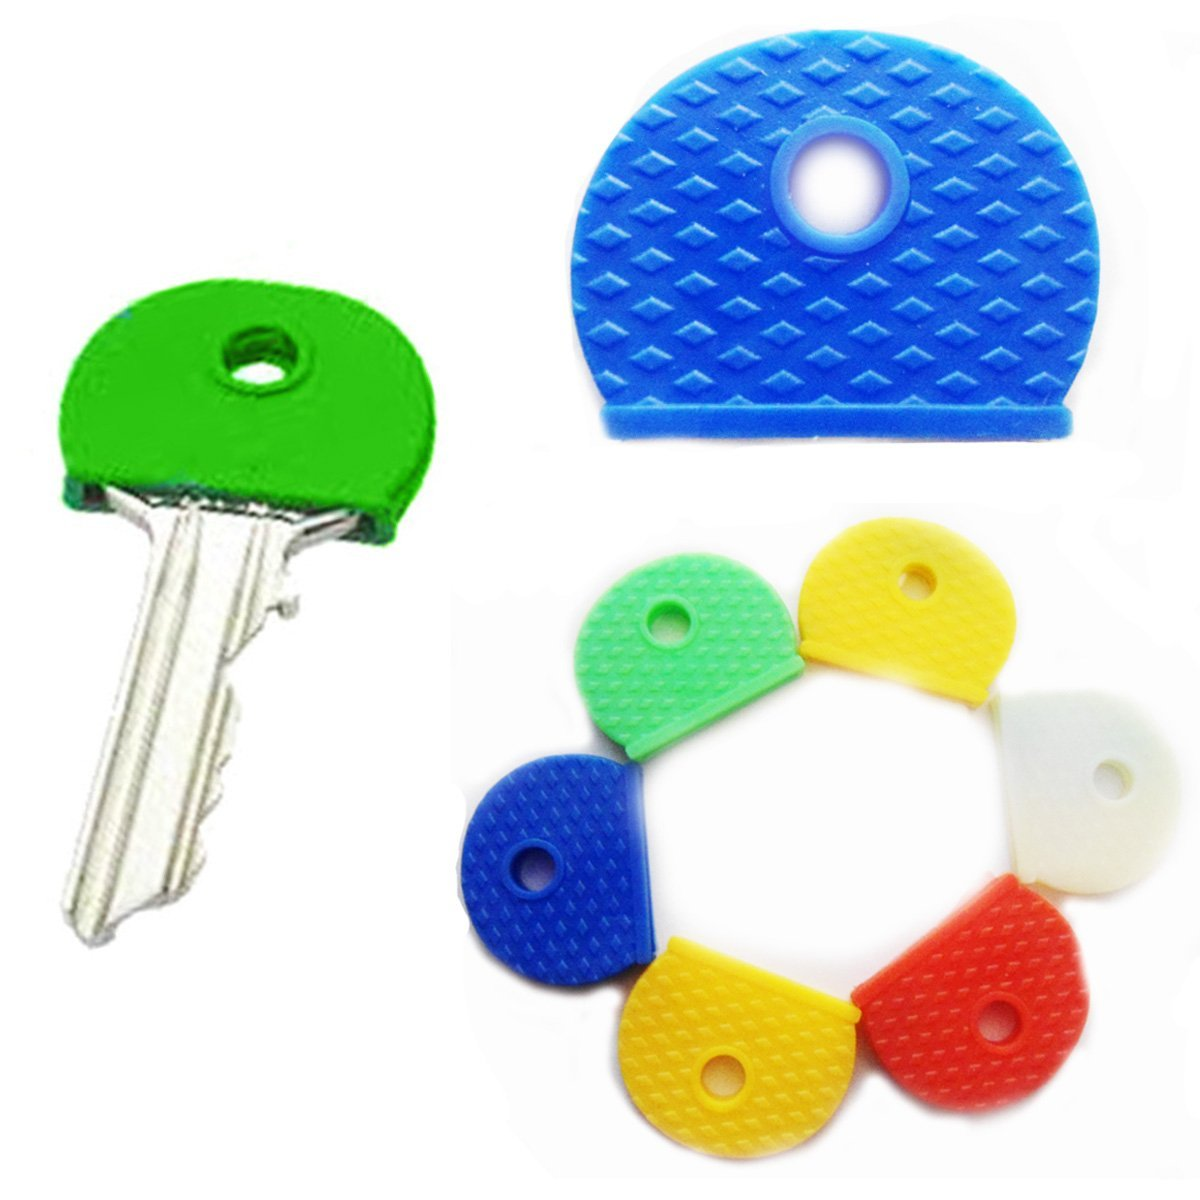 Coloured Key Cap Cover Pack of 5